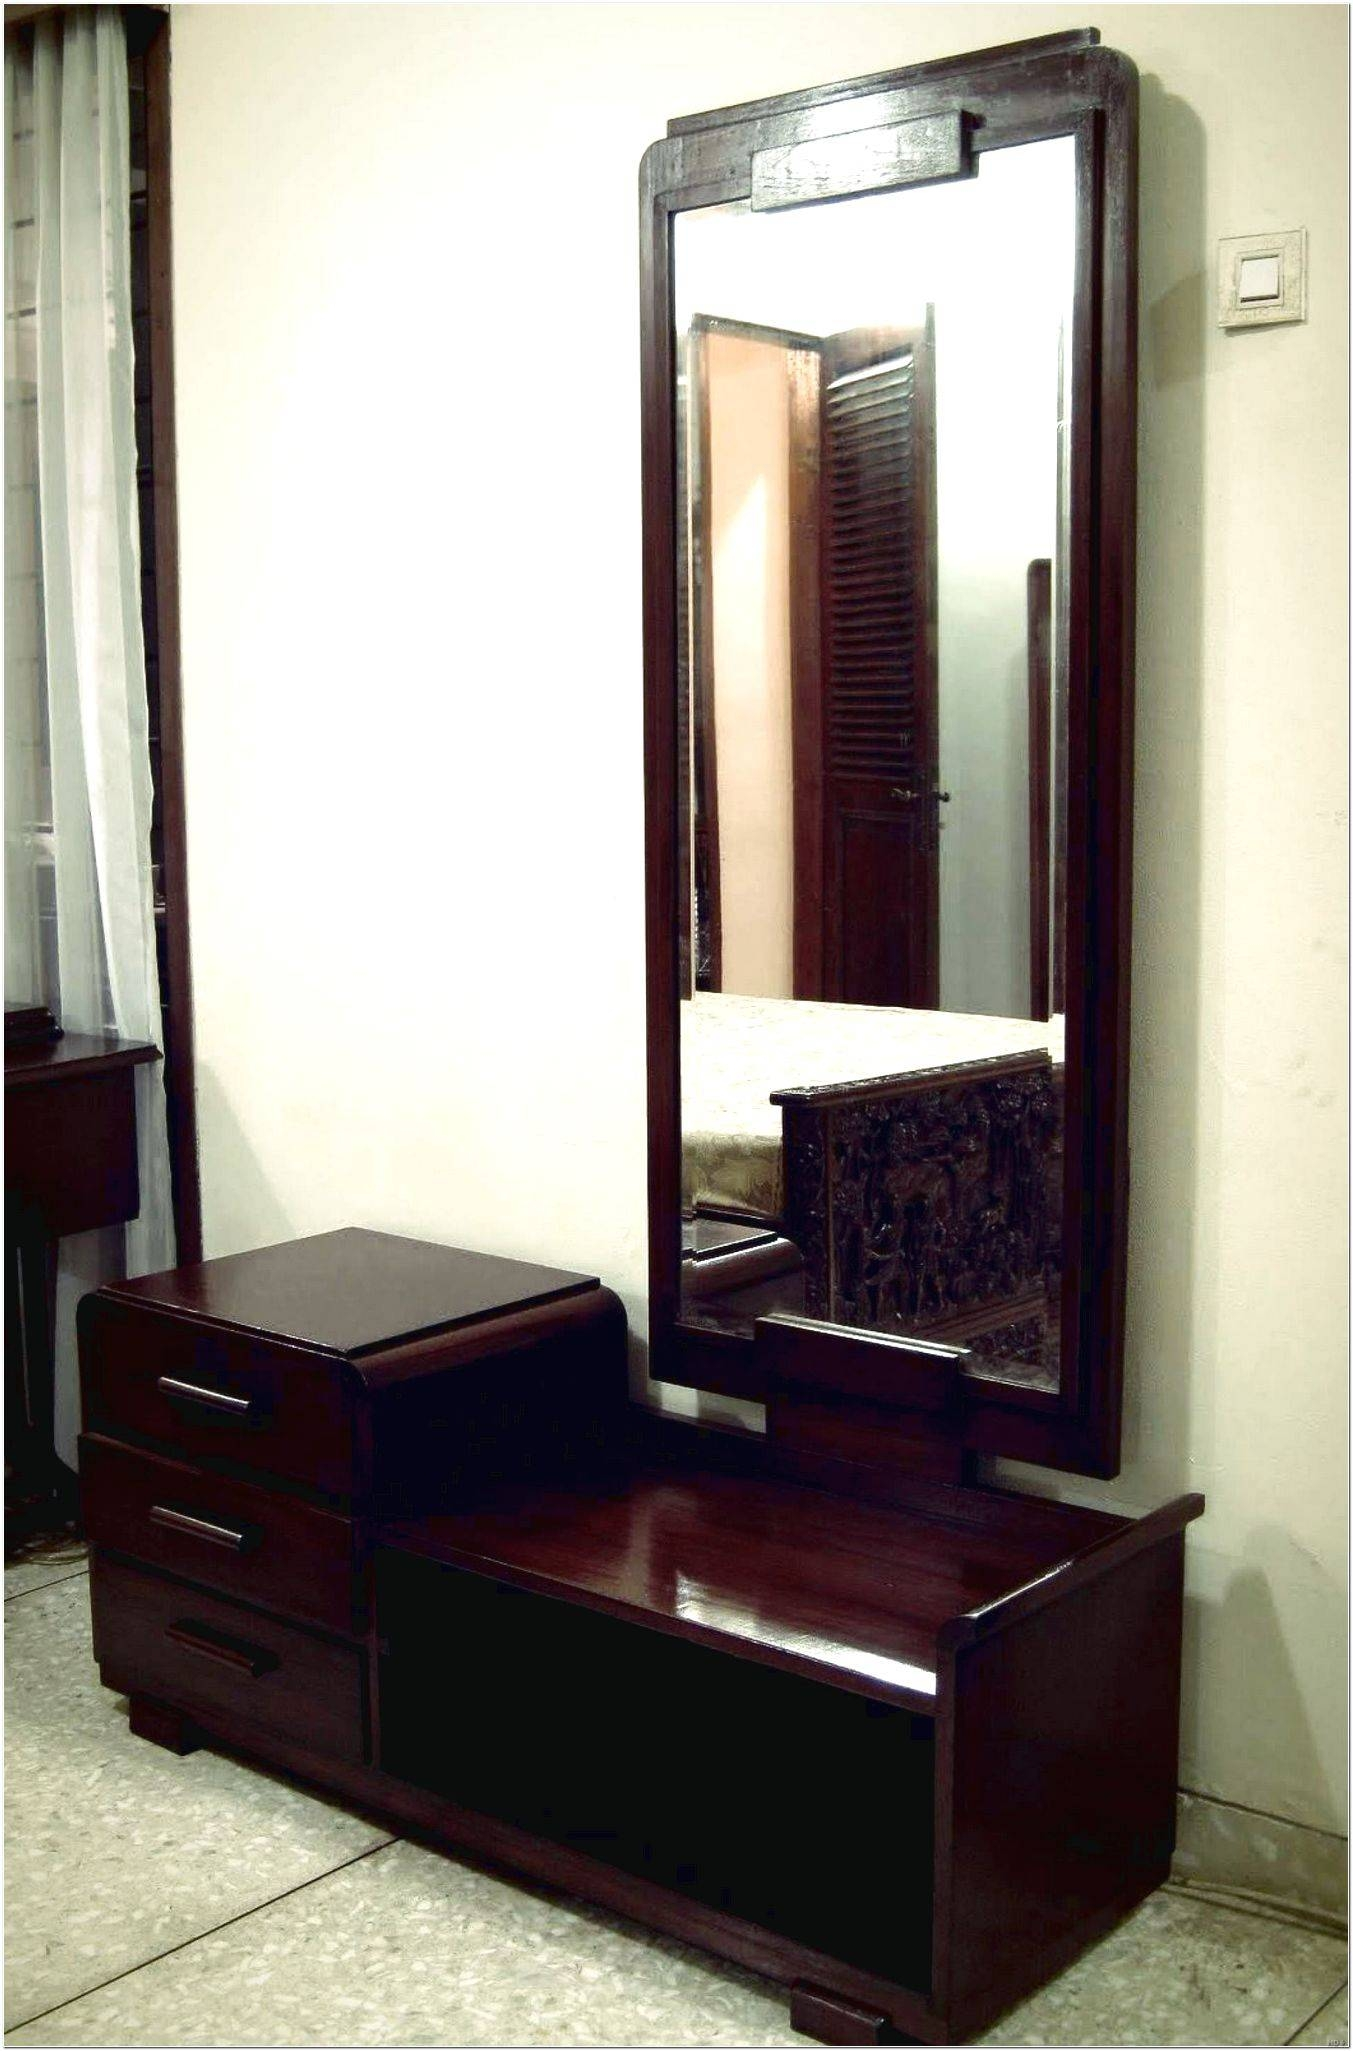 Contemporary Dressing Table Mirror Design Ideas – Interior Design With Contemporary Dressing Table Mirrors (View 8 of 25)